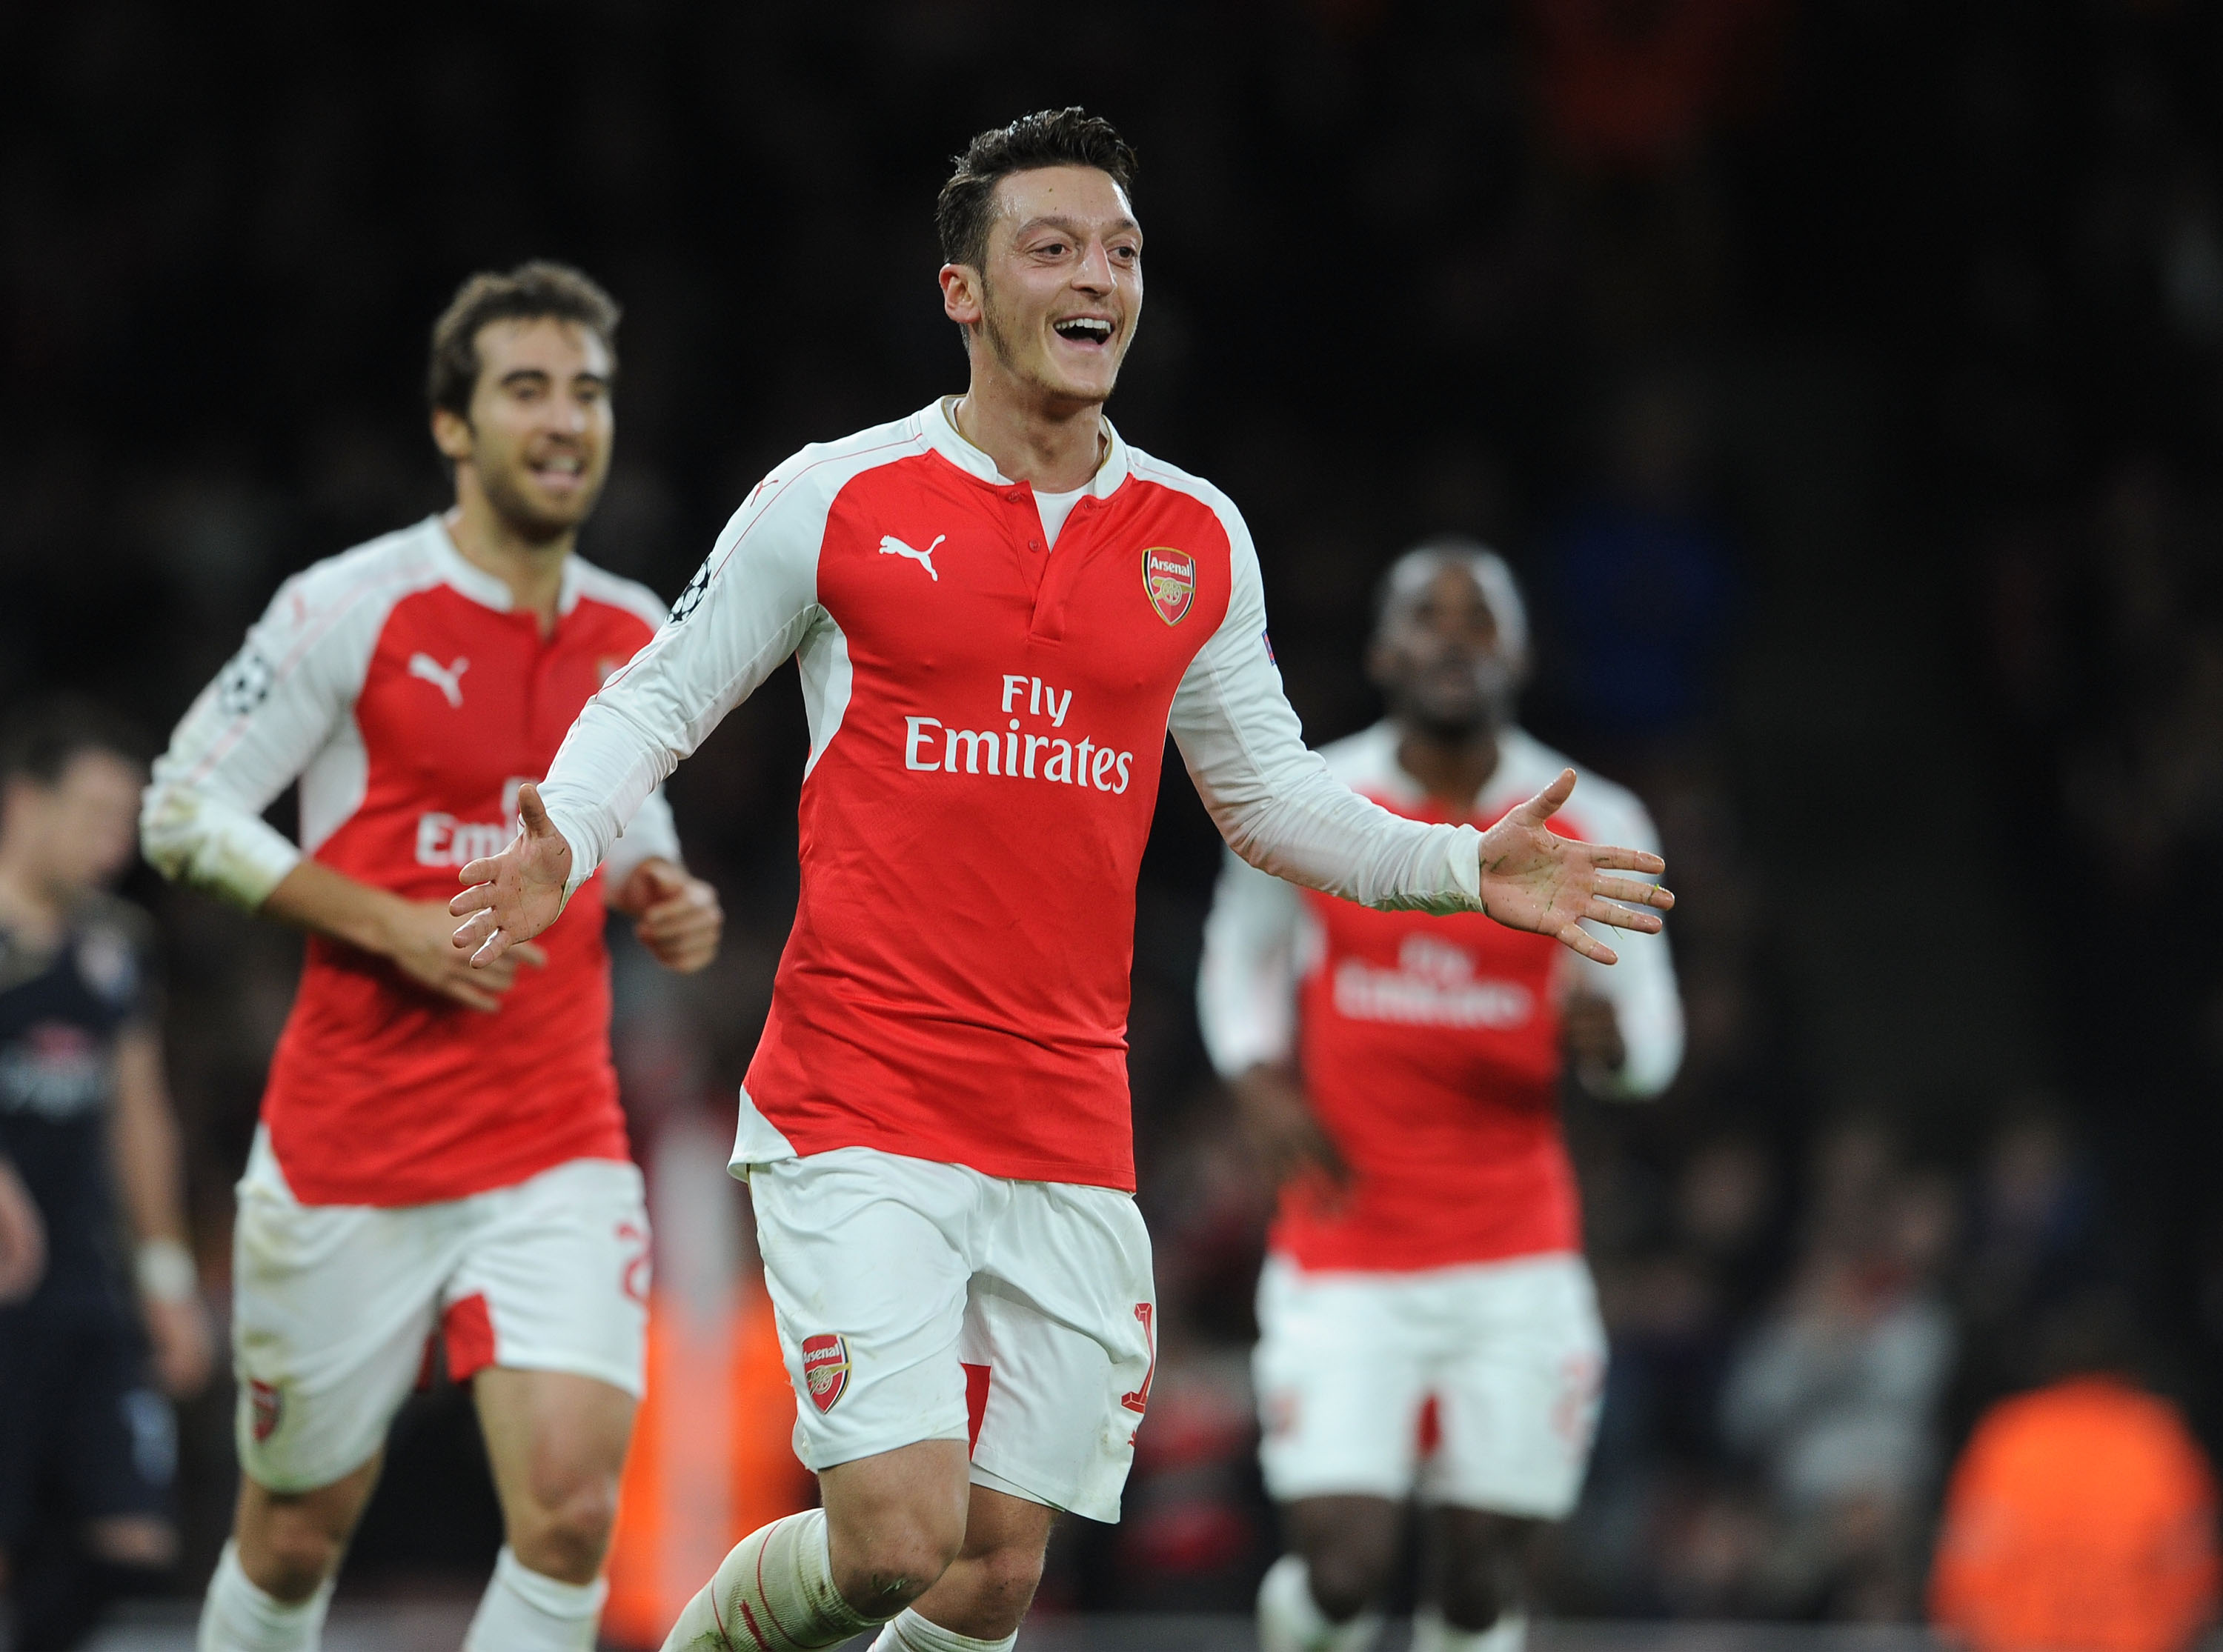 Mesut Ozil can get even better at Arsenal in the coming months and years